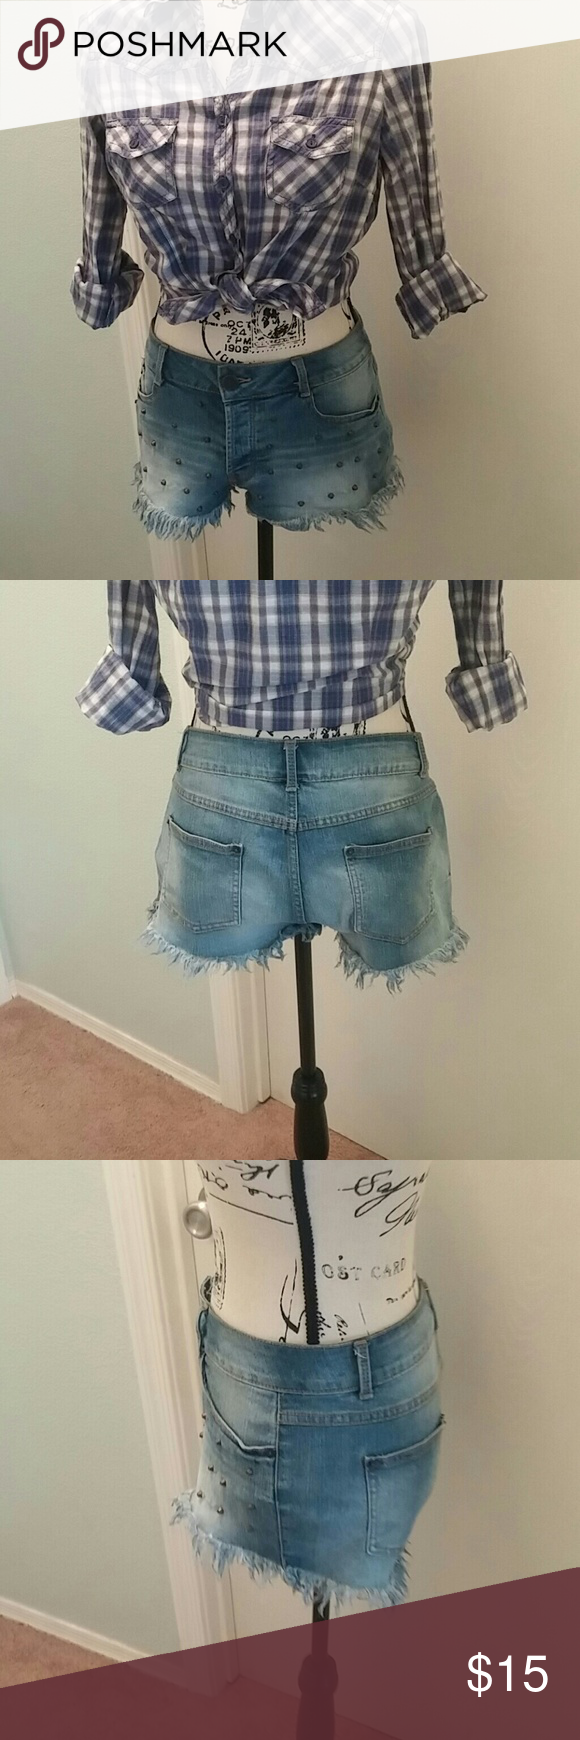 NOBO denim distressed button up shorts size 11 NOBO denim distressed button up shorts size 11 *Check out the stud details on the front* Waist: 32 Length: 9-10  #0202  RF No Boundaries Shorts Jean Shorts